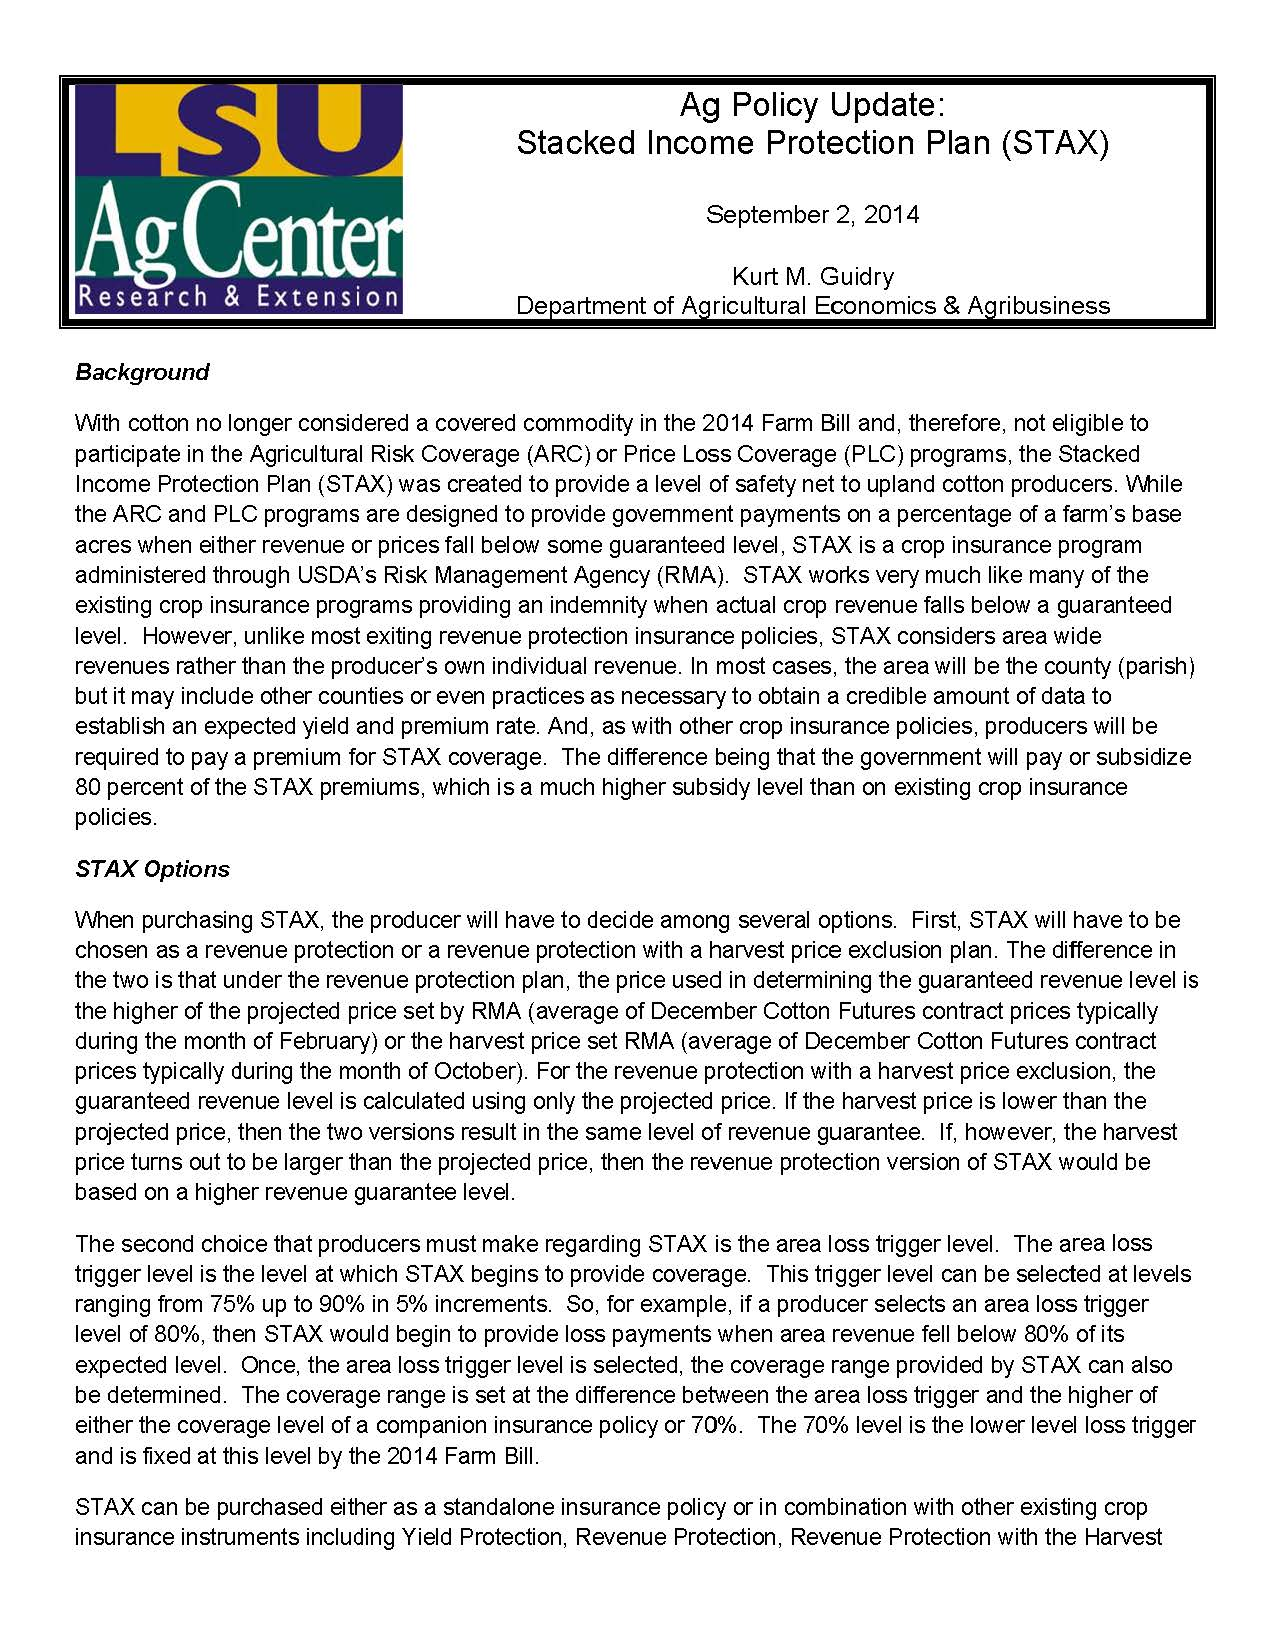 Ag Policy Update: Stacked Income Protection Plan (STAX)